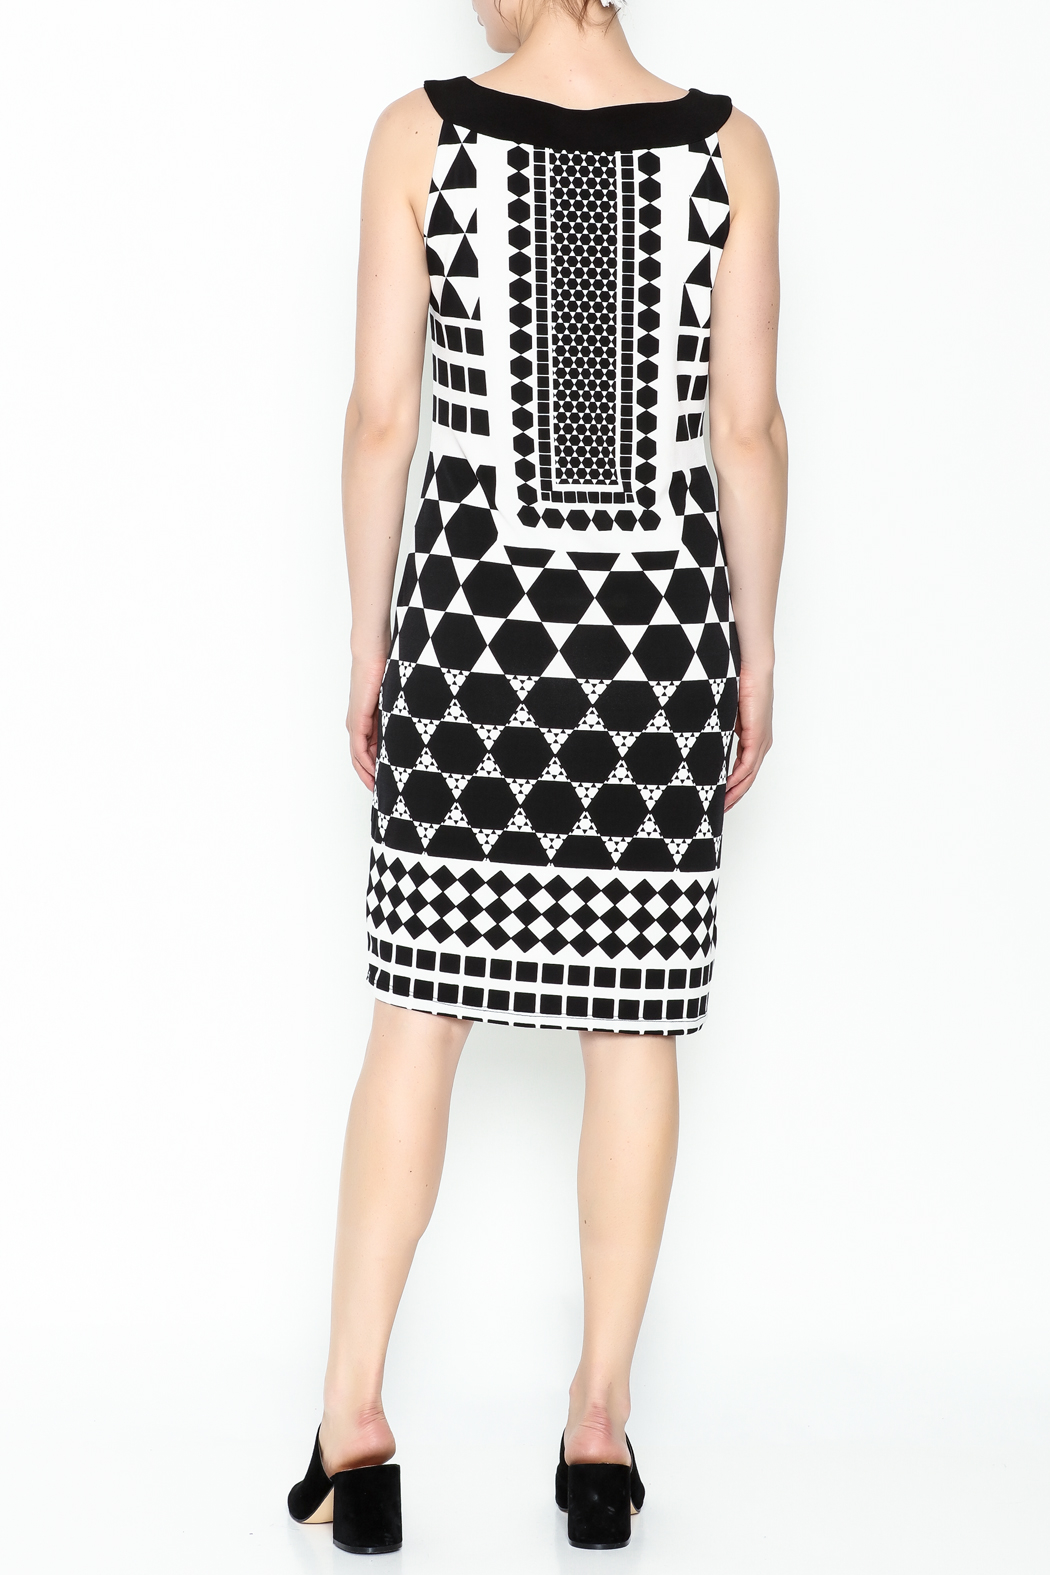 Tribal Printed Black Beauty Dress - Back Cropped Image